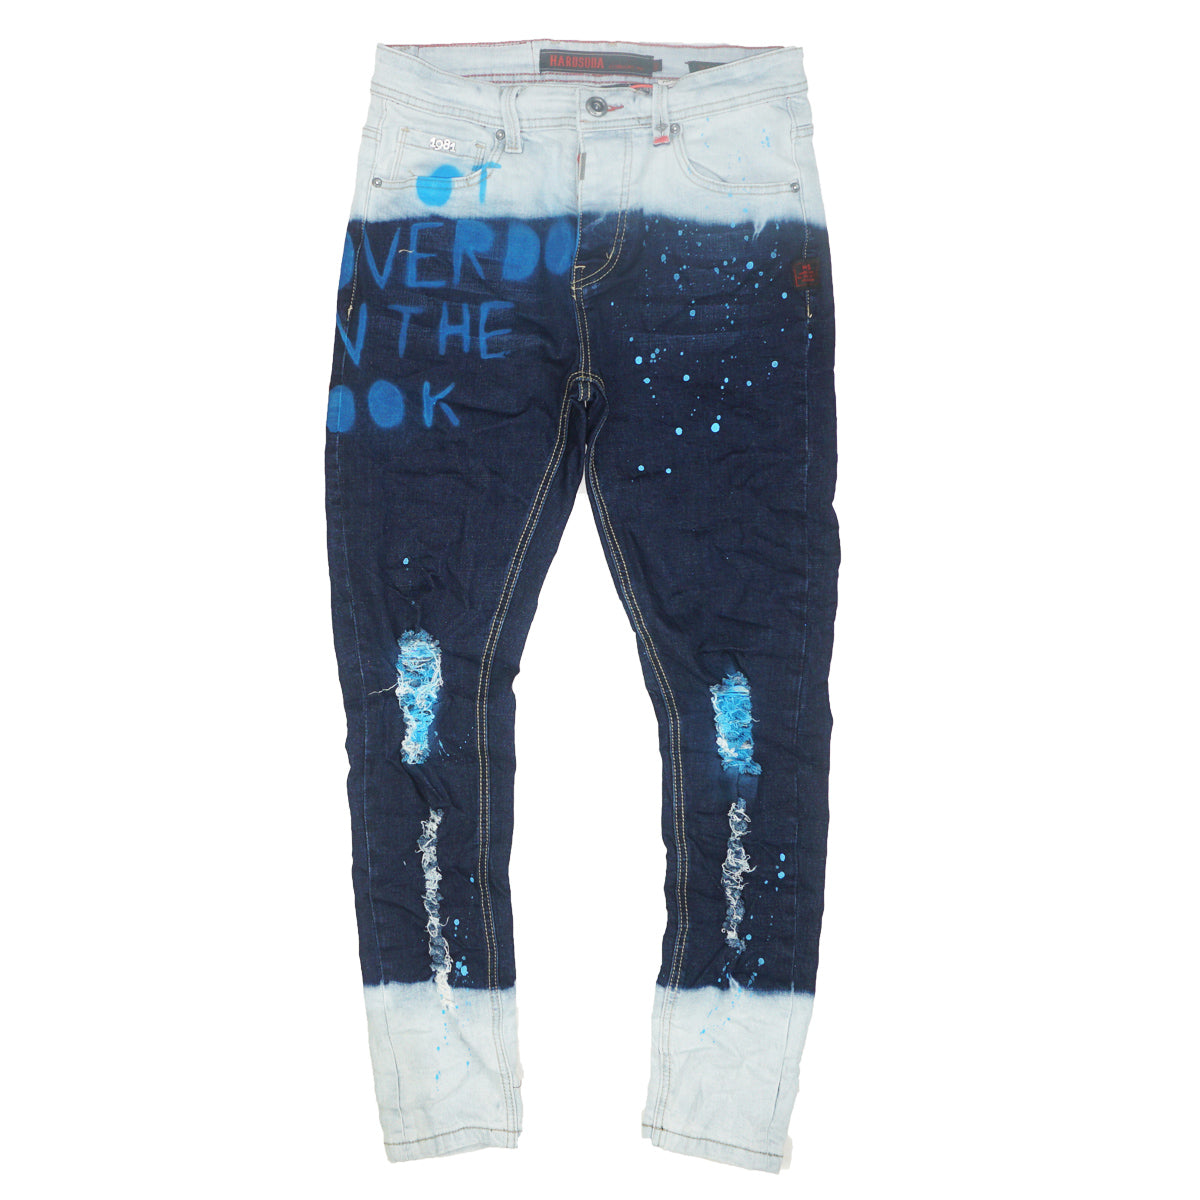 The Look Denim ( Blue / Whte / Red ) / C3